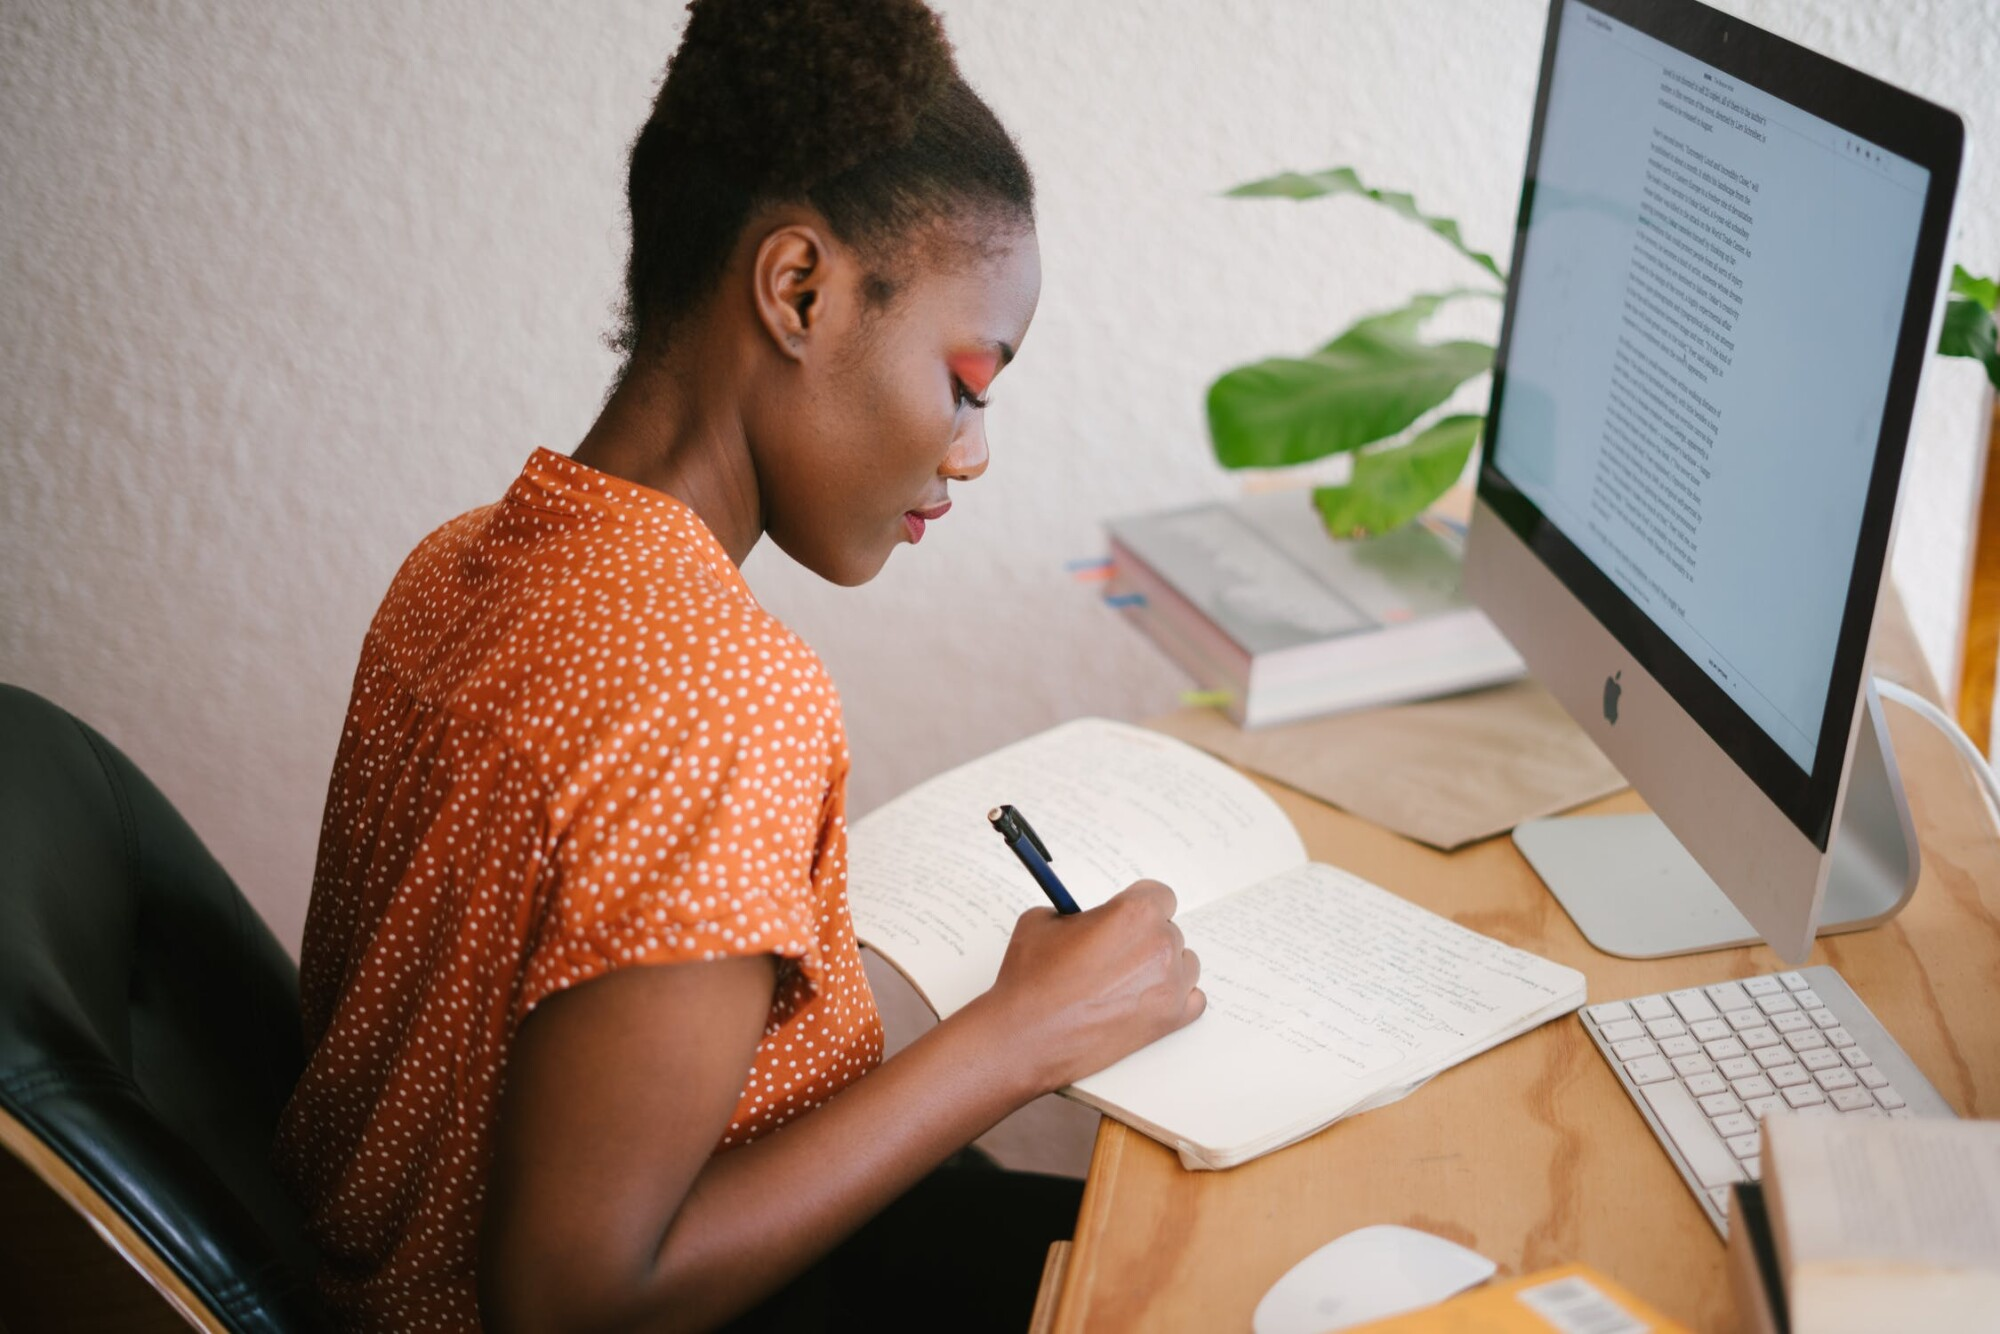 How to get started as a freelance writer in 7 easy steps